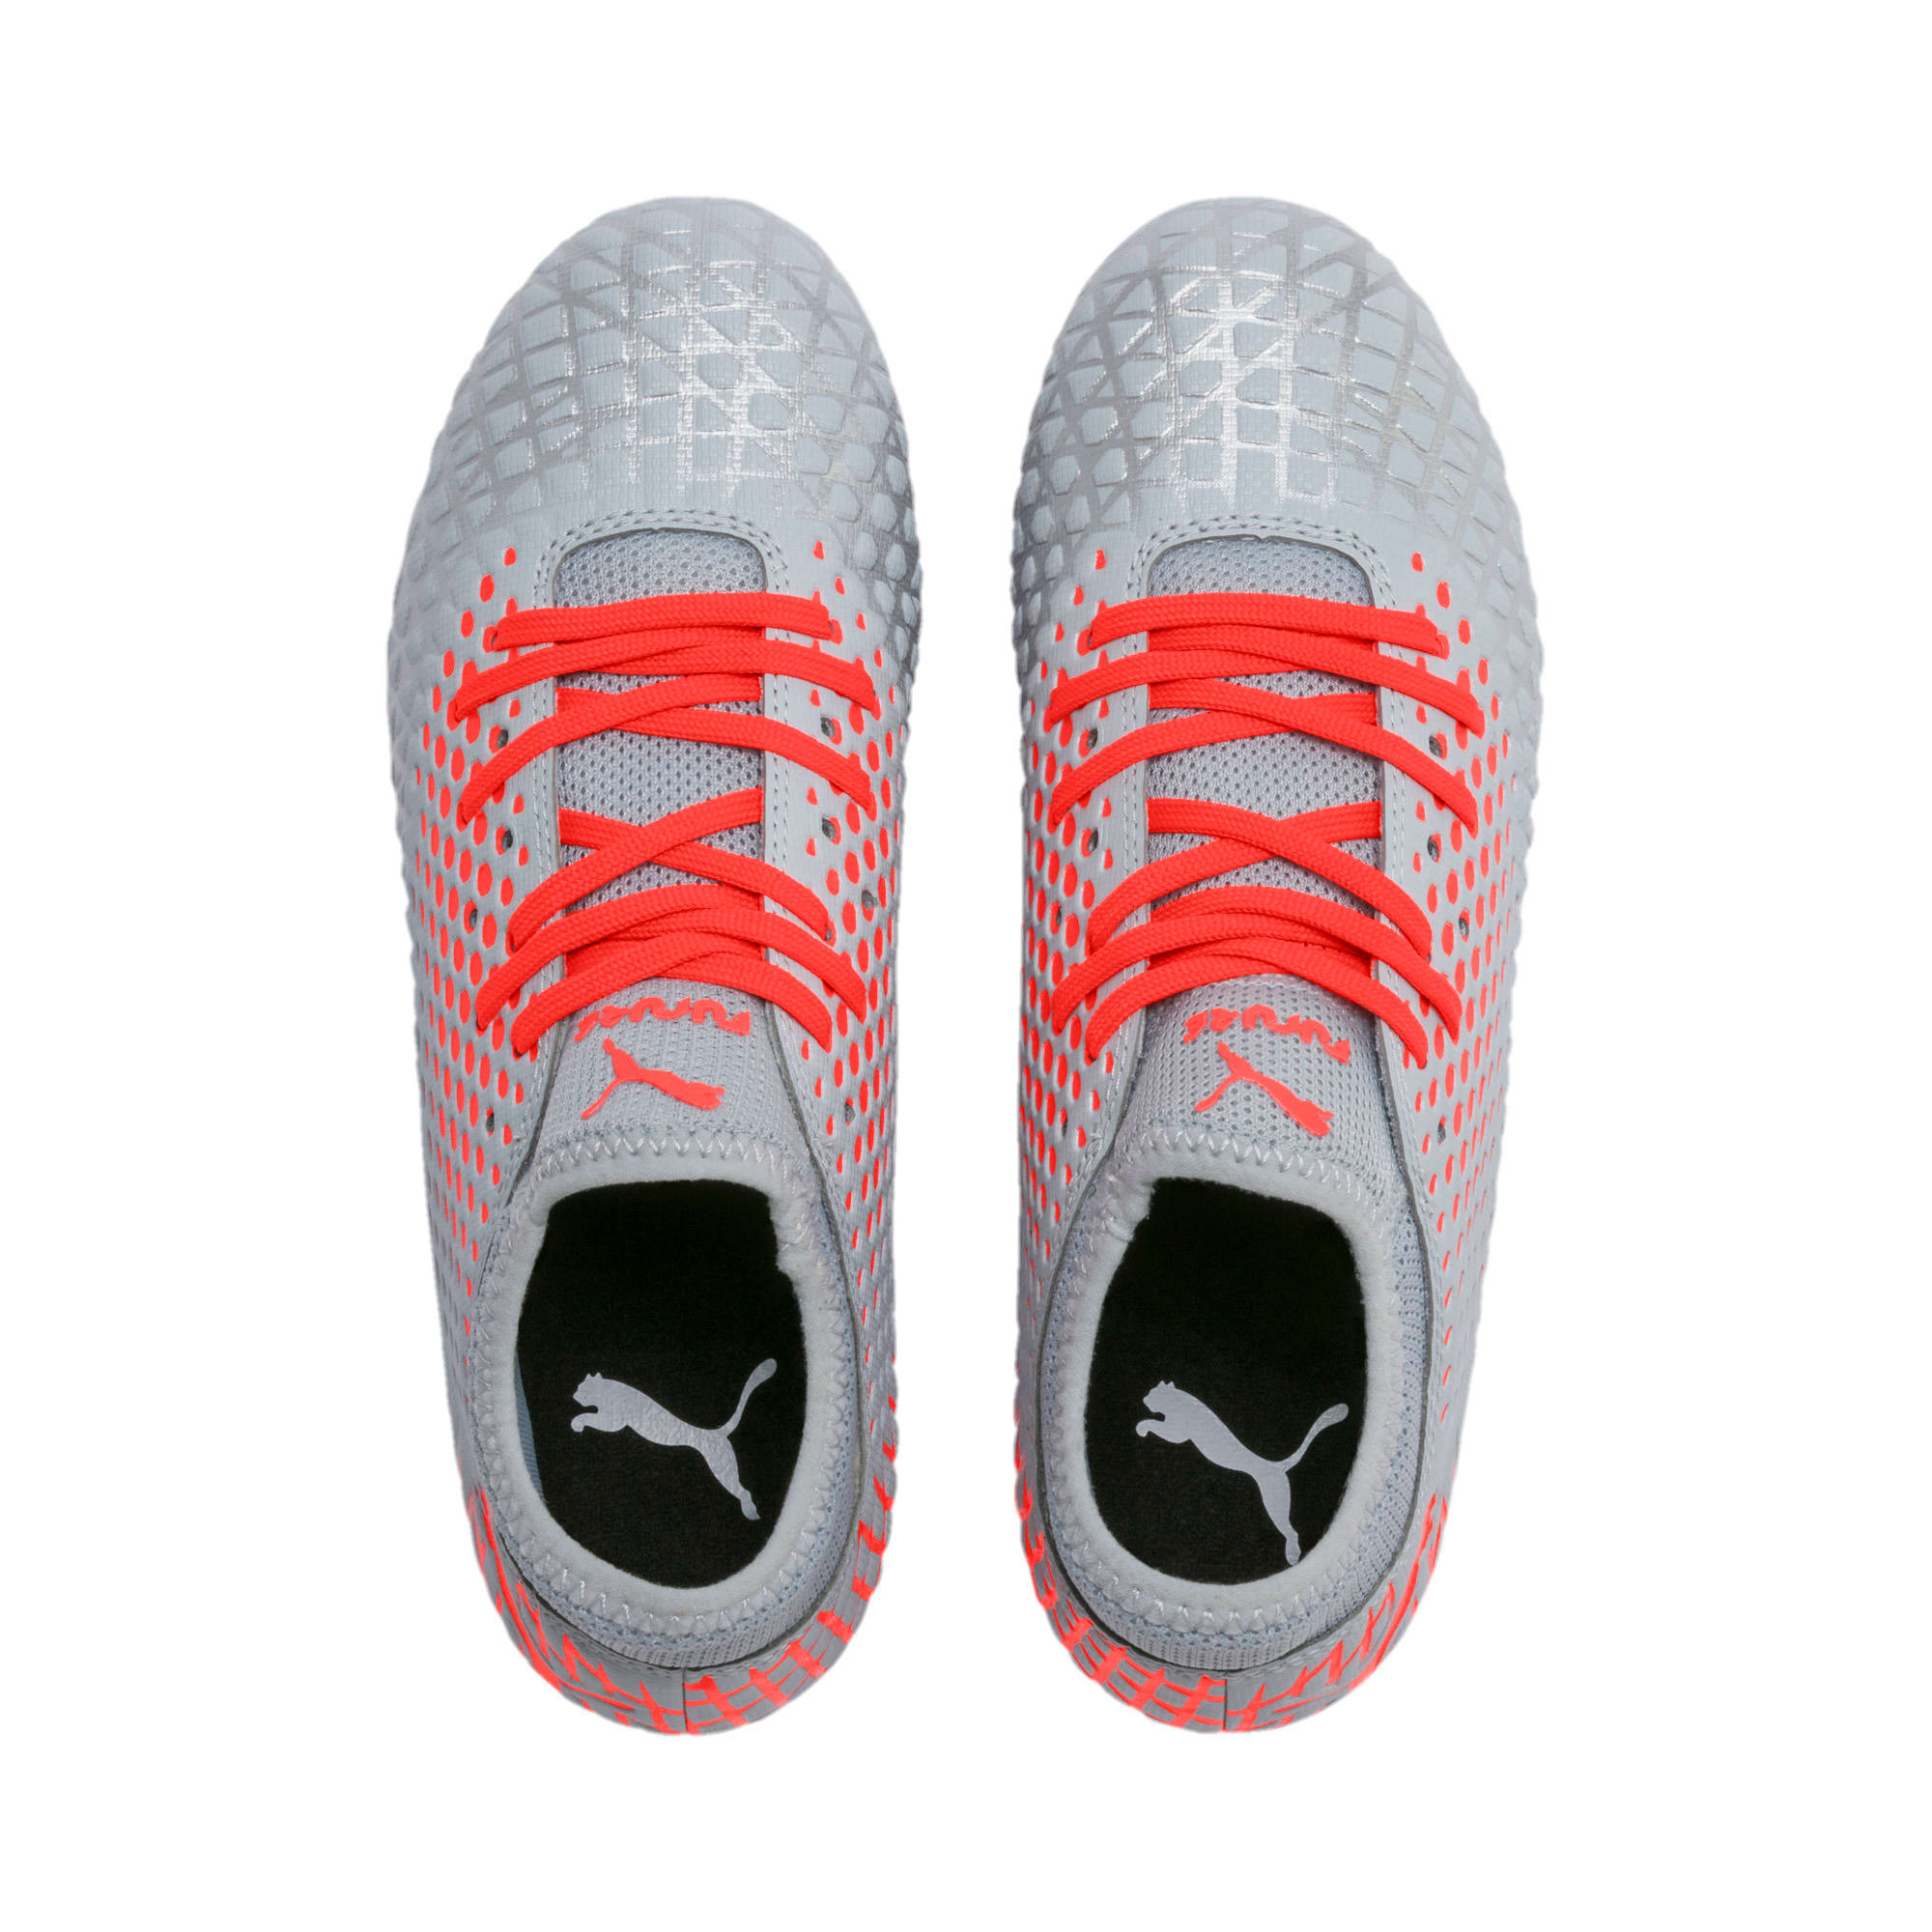 Thumbnail 6 of FUTURE 4.4 Youth Football Boots, Glacial Blue-Nrgy Red, medium-IND